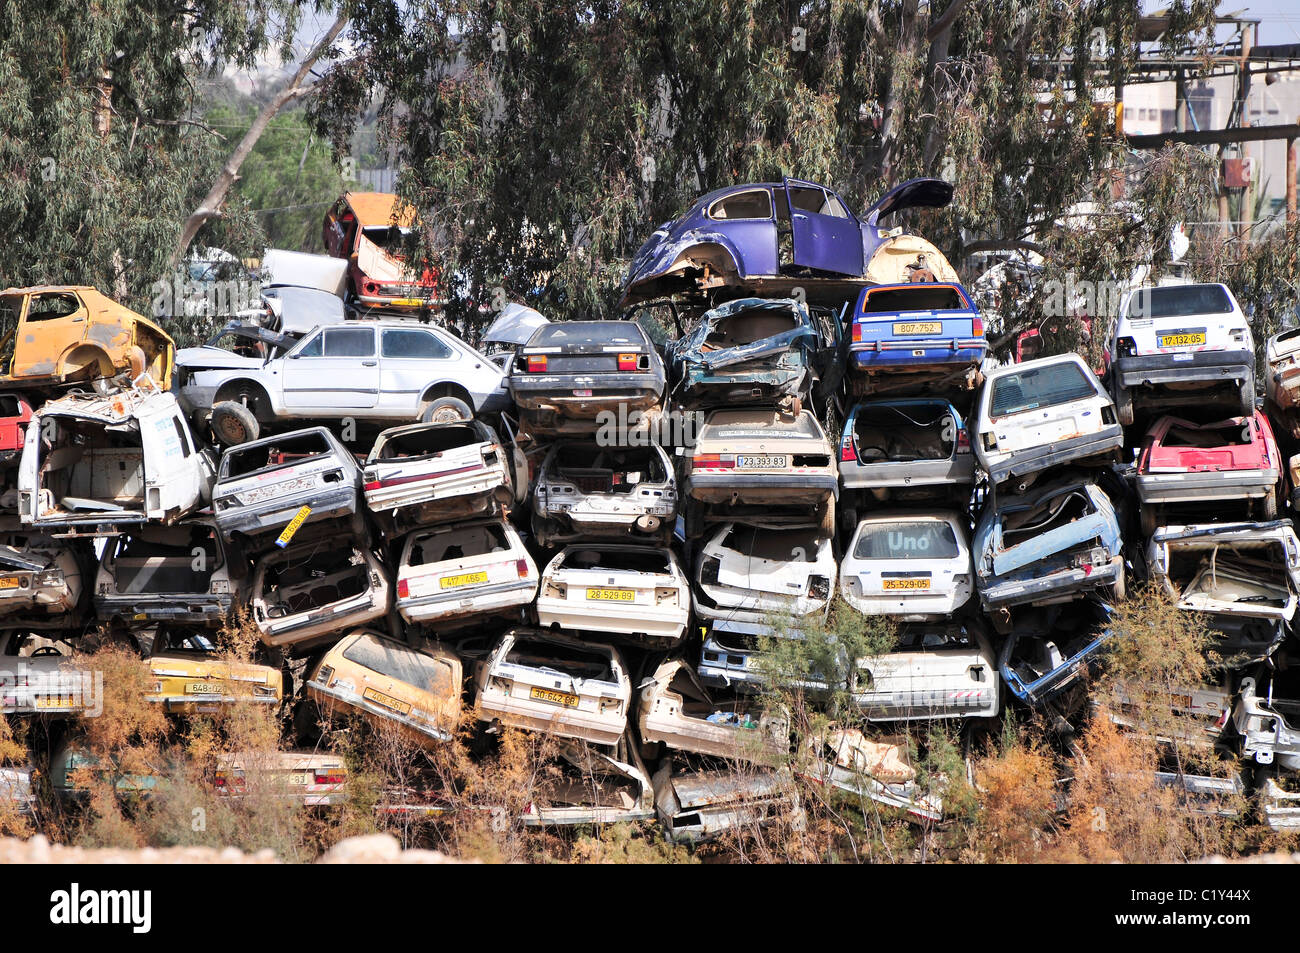 Car Piled Up Stock Photos & Car Piled Up Stock Images - Alamy